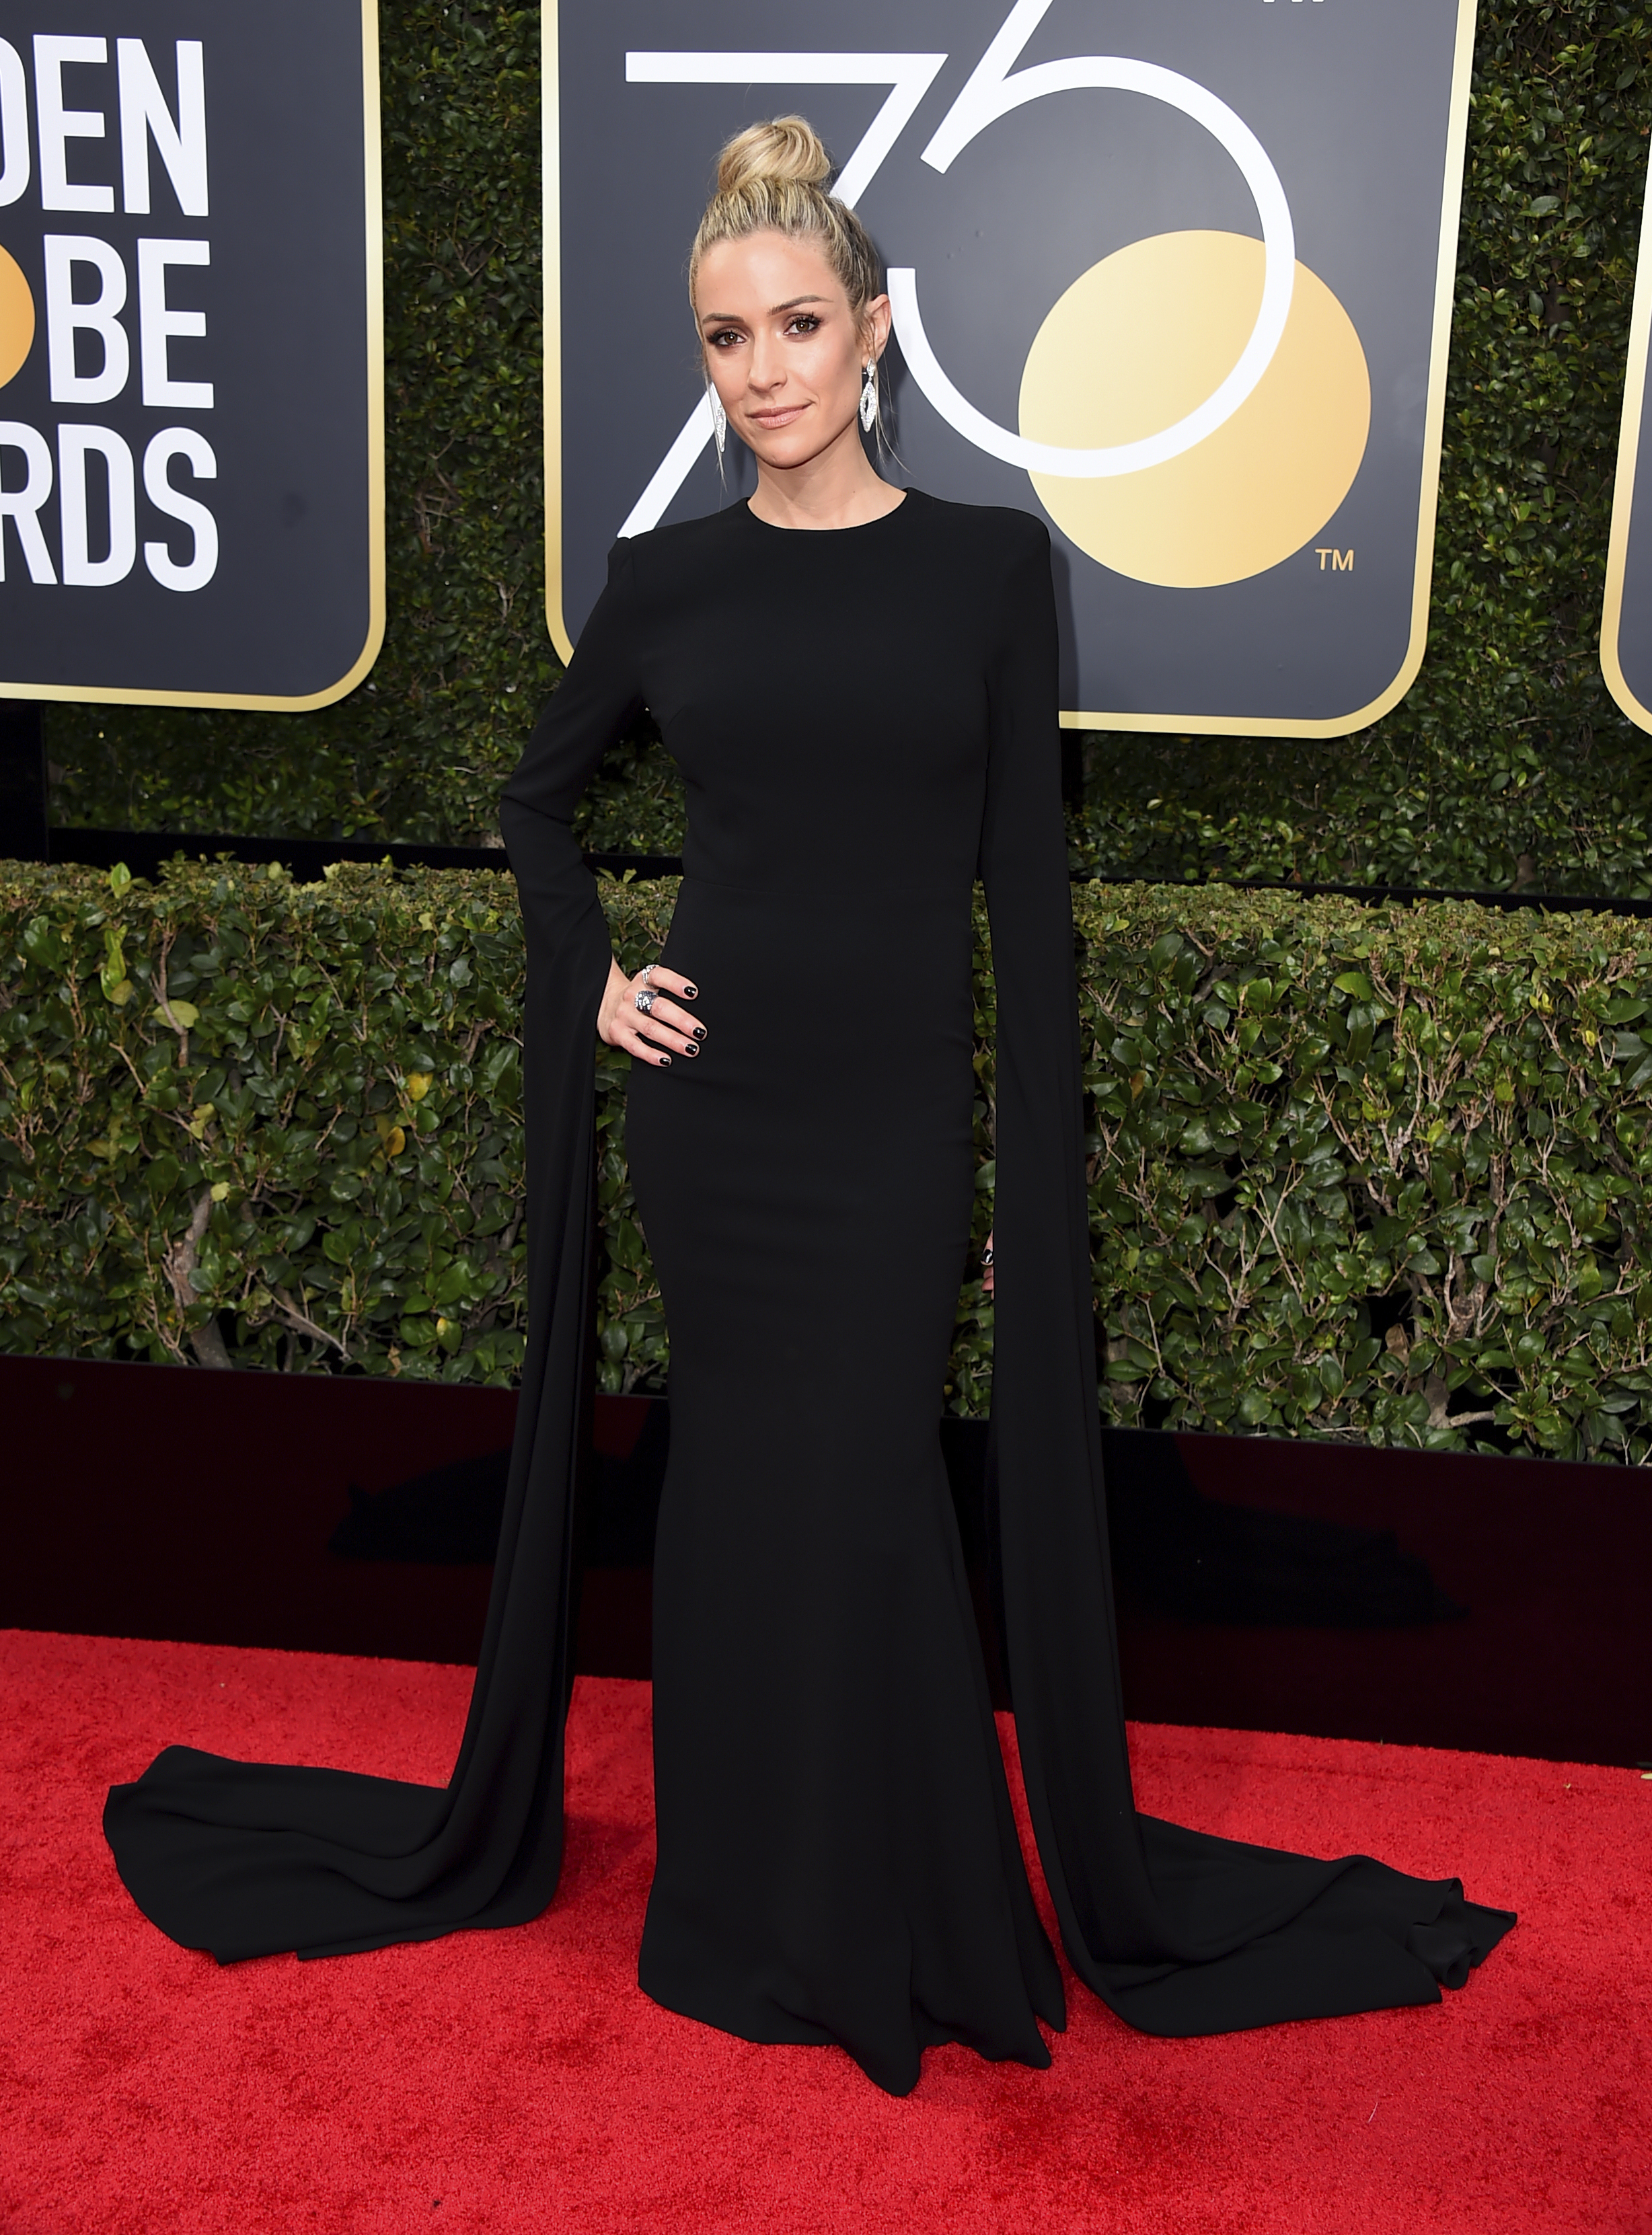 <div class='meta'><div class='origin-logo' data-origin='AP'></div><span class='caption-text' data-credit='Jordan Strauss/Invision/AP'>Kristin Cavallari arrives at the 75th annual Golden Globe Awards at the Beverly Hilton Hotel on Sunday, Jan. 7, 2018, in Beverly Hills, Calif.</span></div>